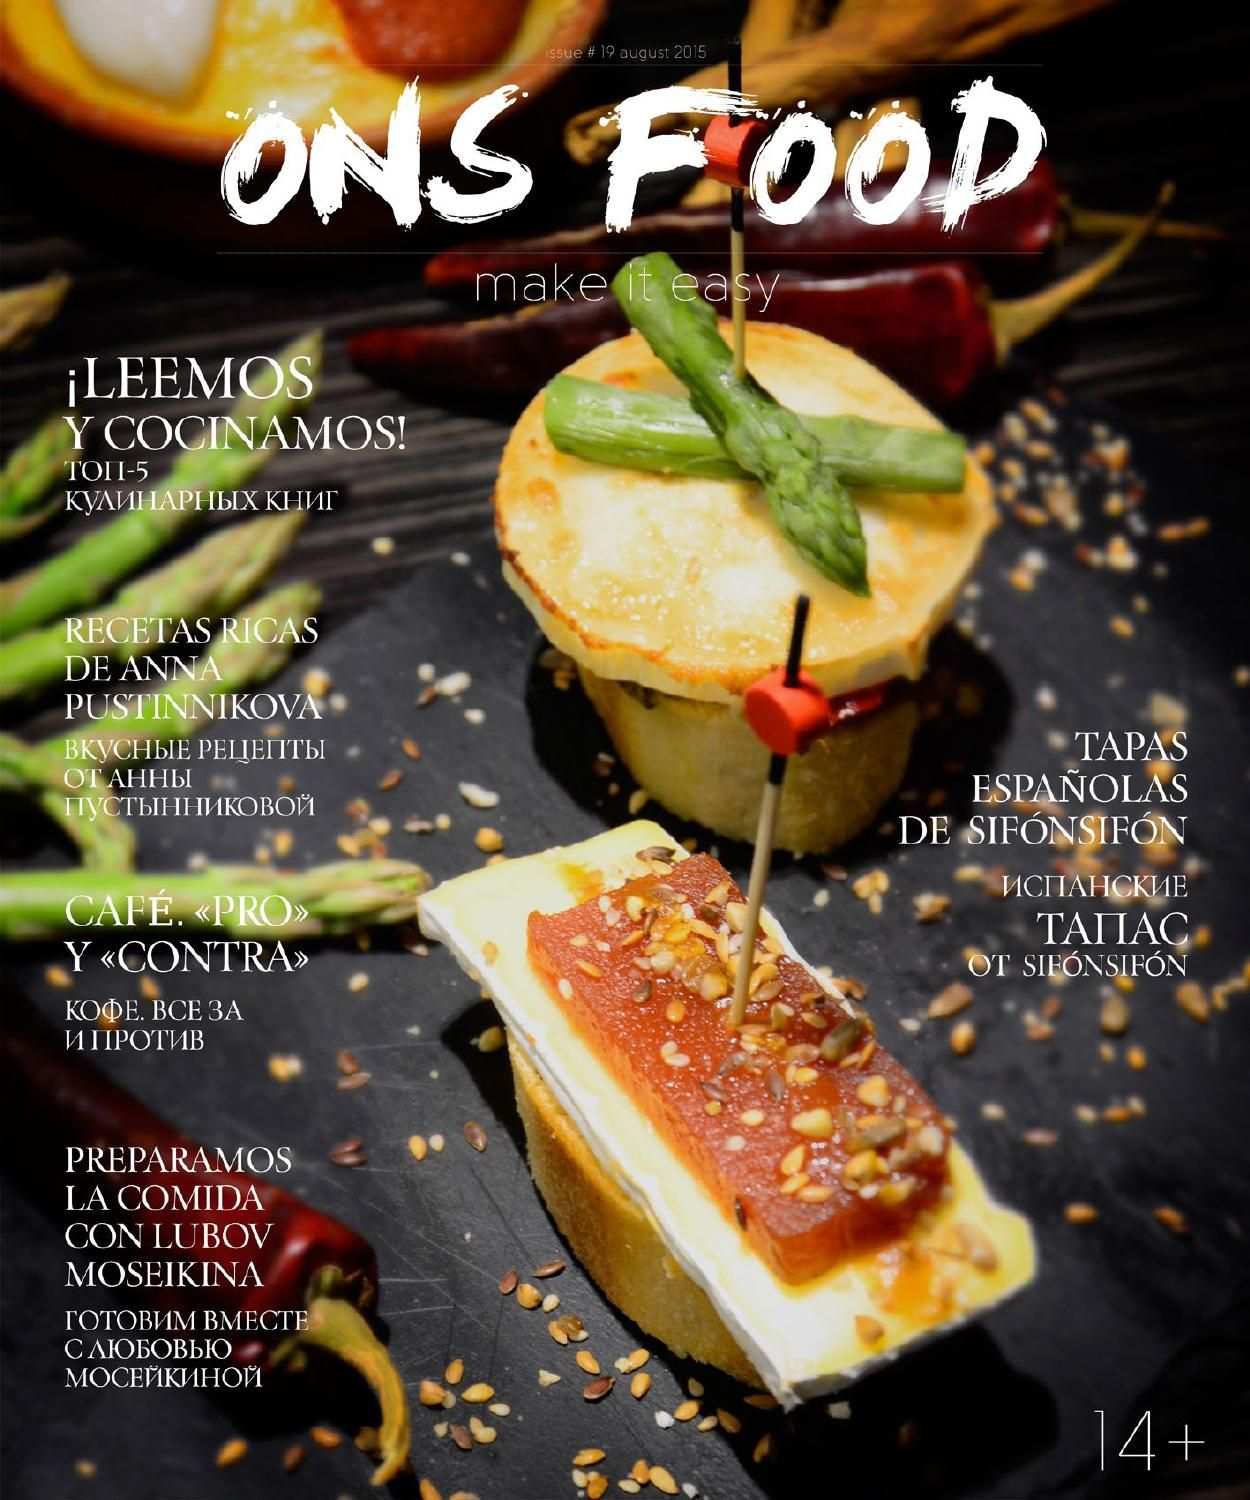 ONS MAGAZINE FOOD issue #19 august 2015